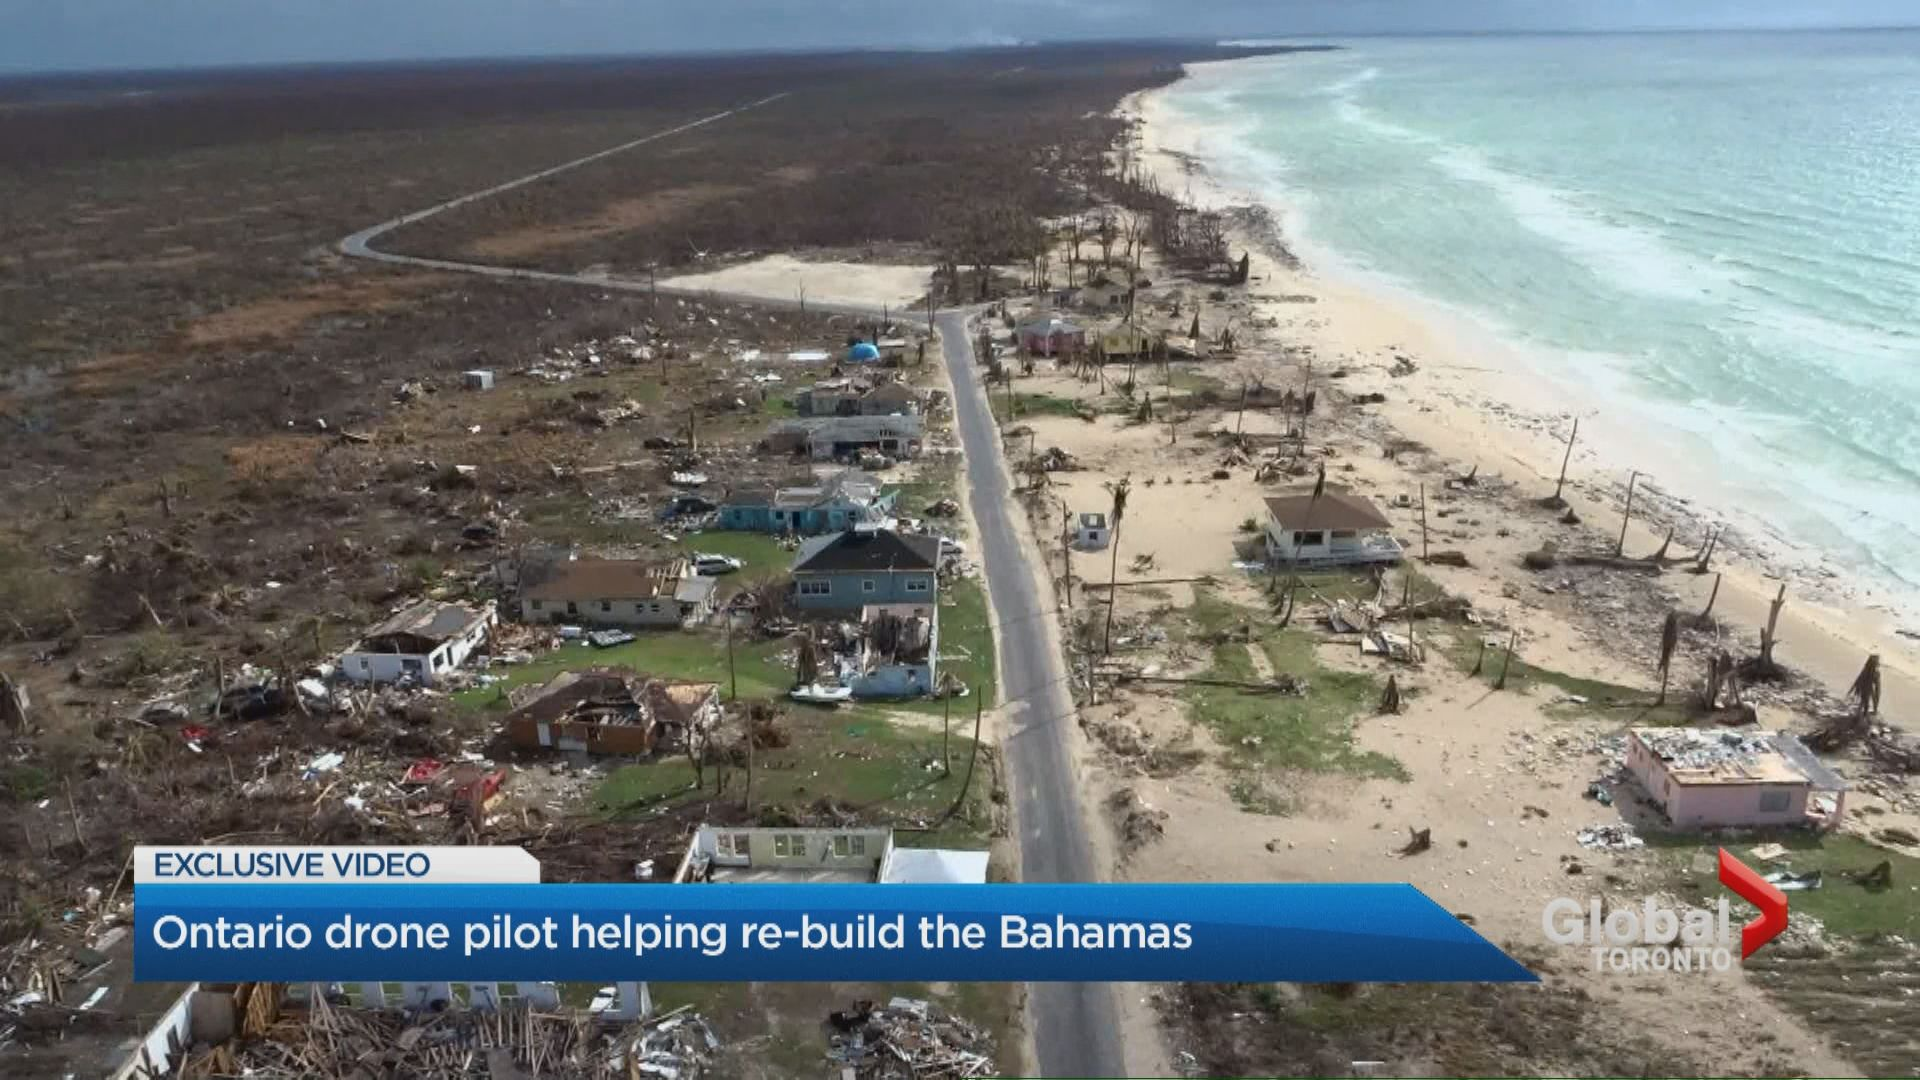 Ontario drone pilot helping rebuild the Bahamas